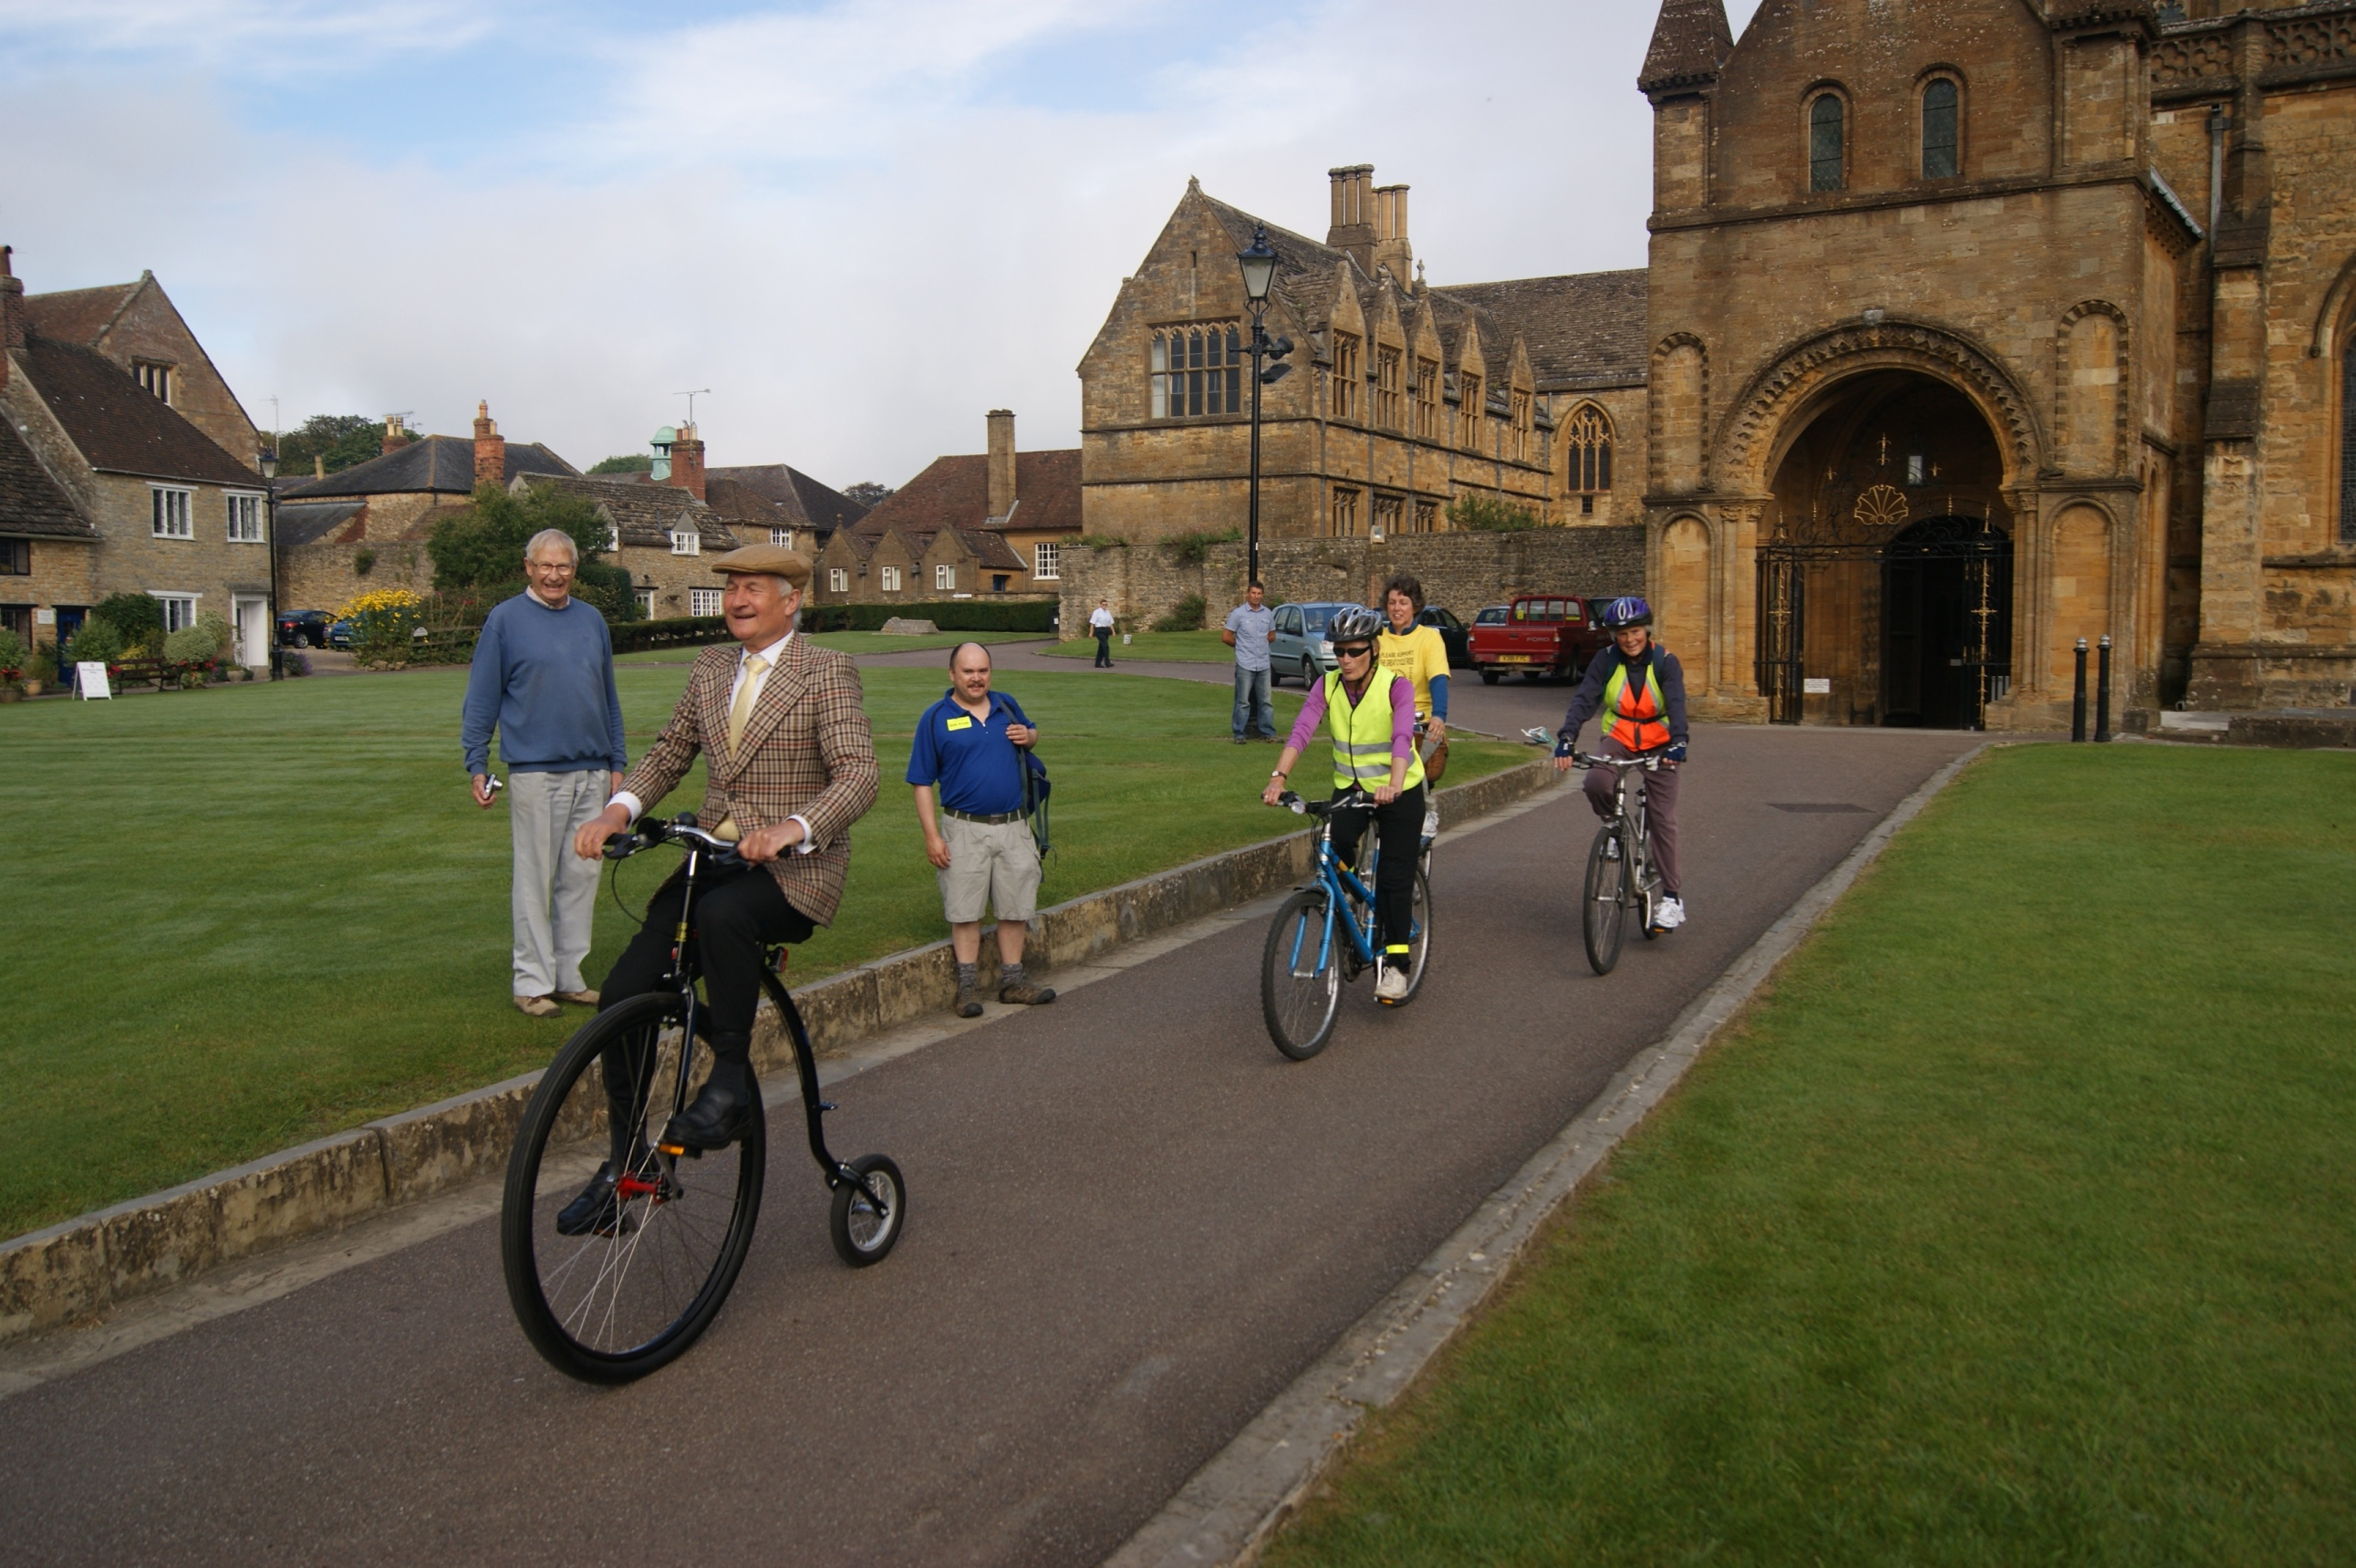 The leader of the pack, sherborne abbey 2013